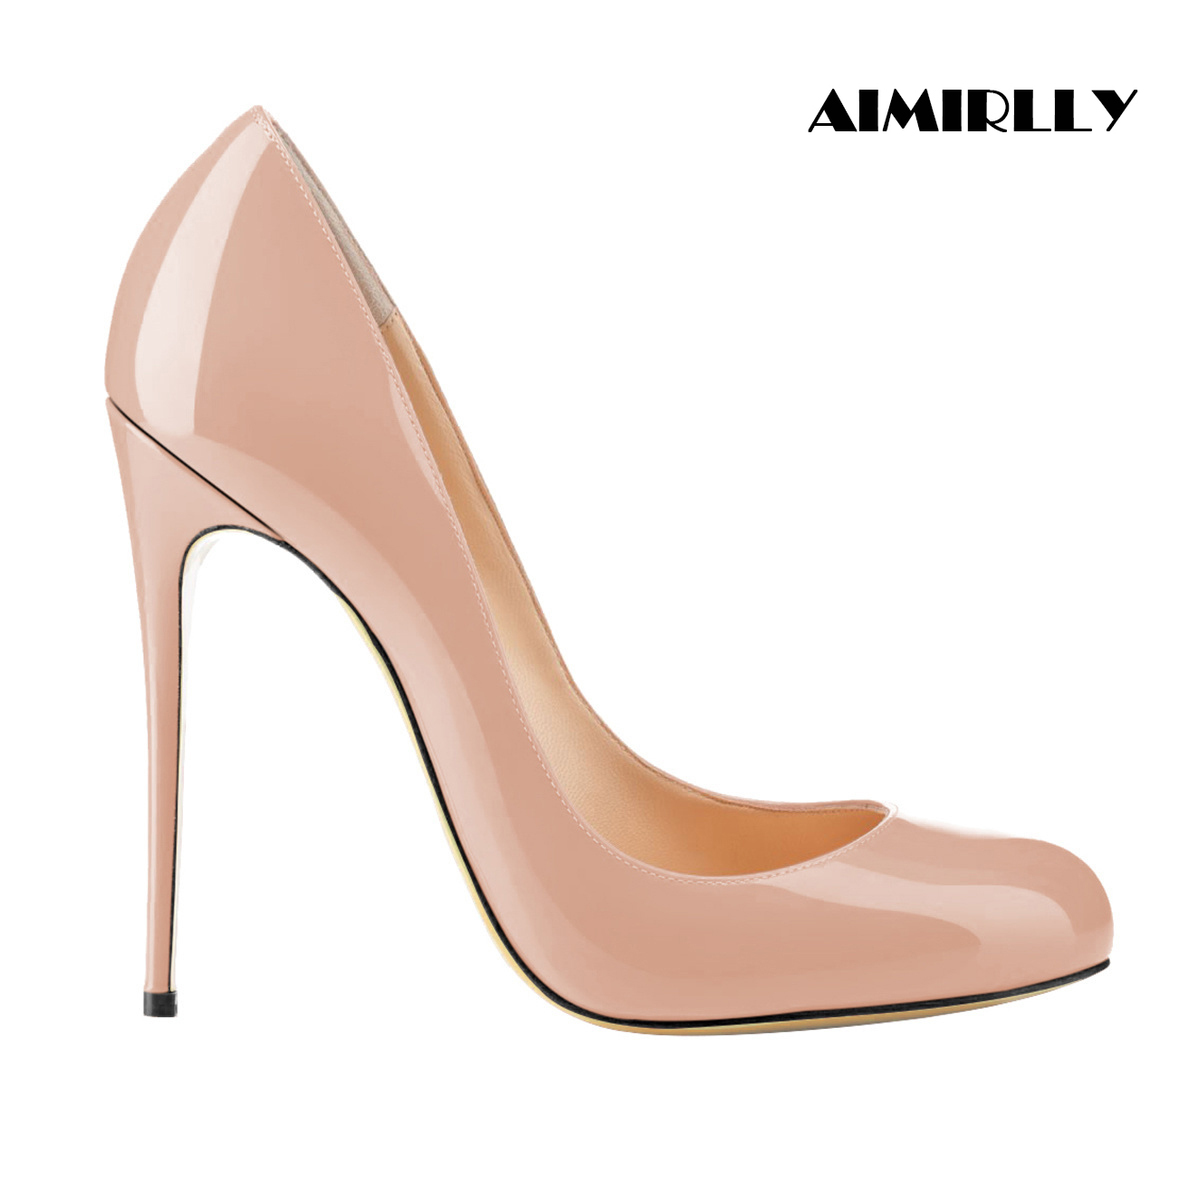 Aimirlly Women Shoes High Heels Pumps Round Toe Formal Evening Party Shoes Wedding Shoes Sexy Thin